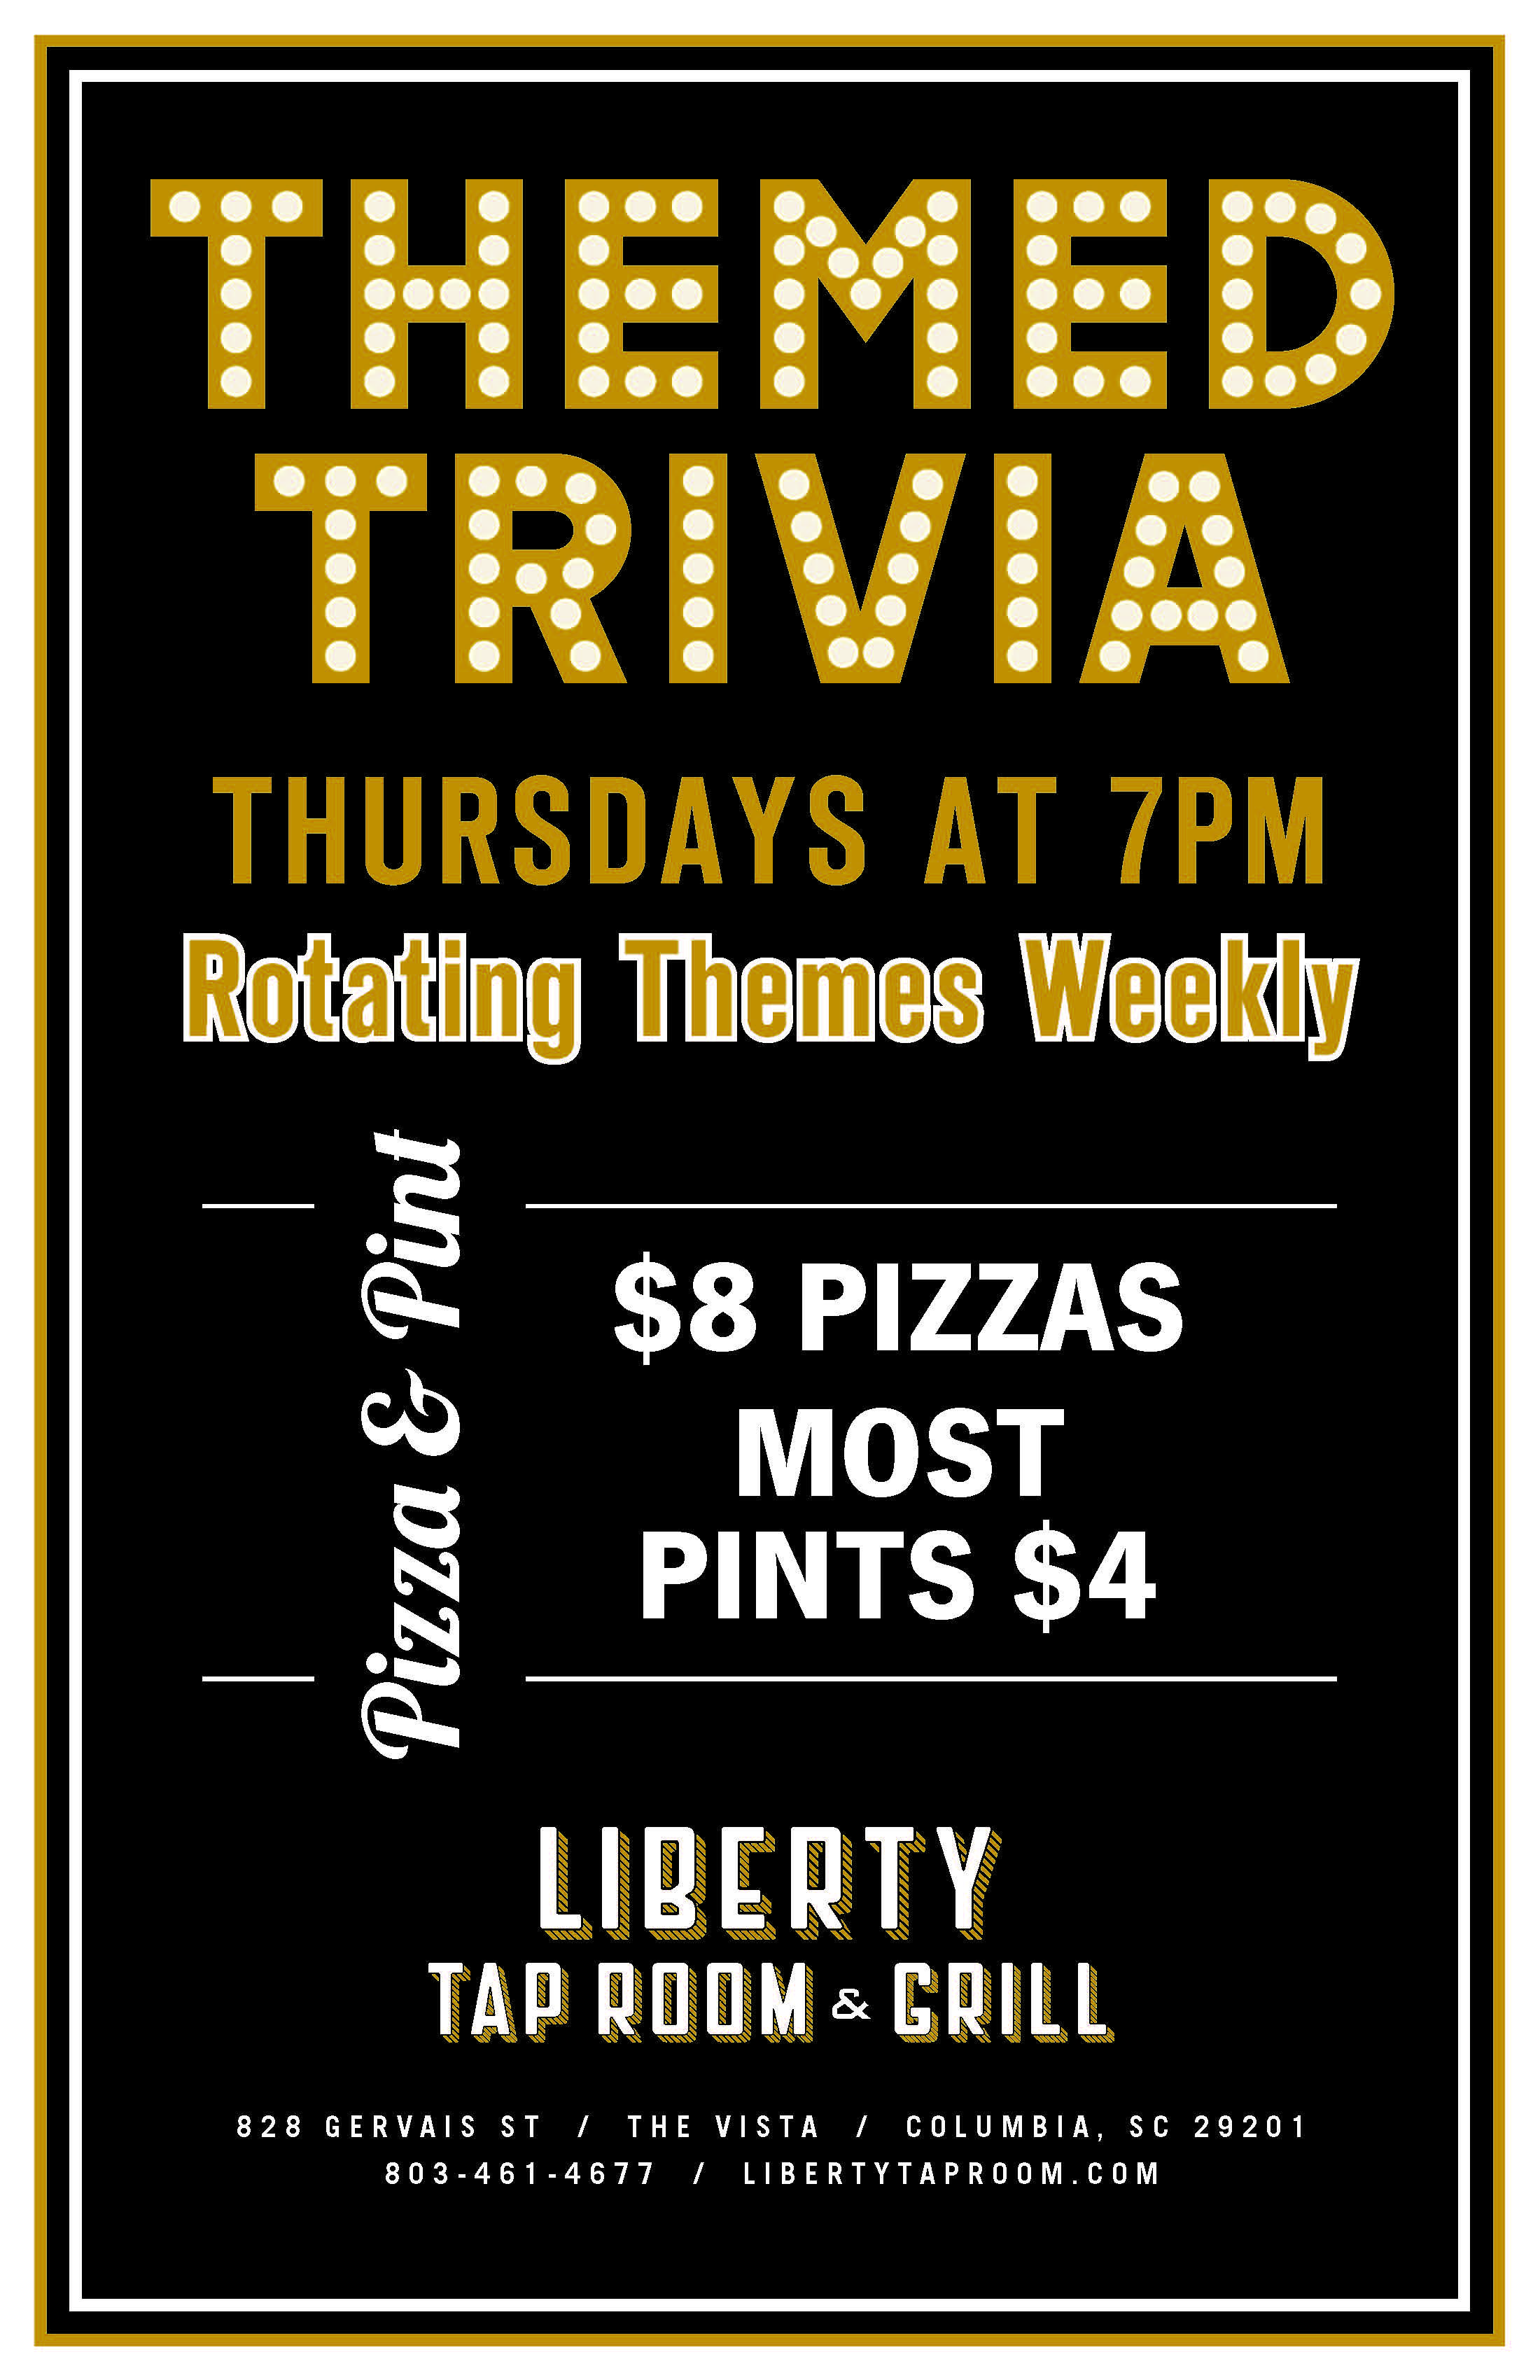 (200) Liberty Vista Trivia 4 pints.jpg